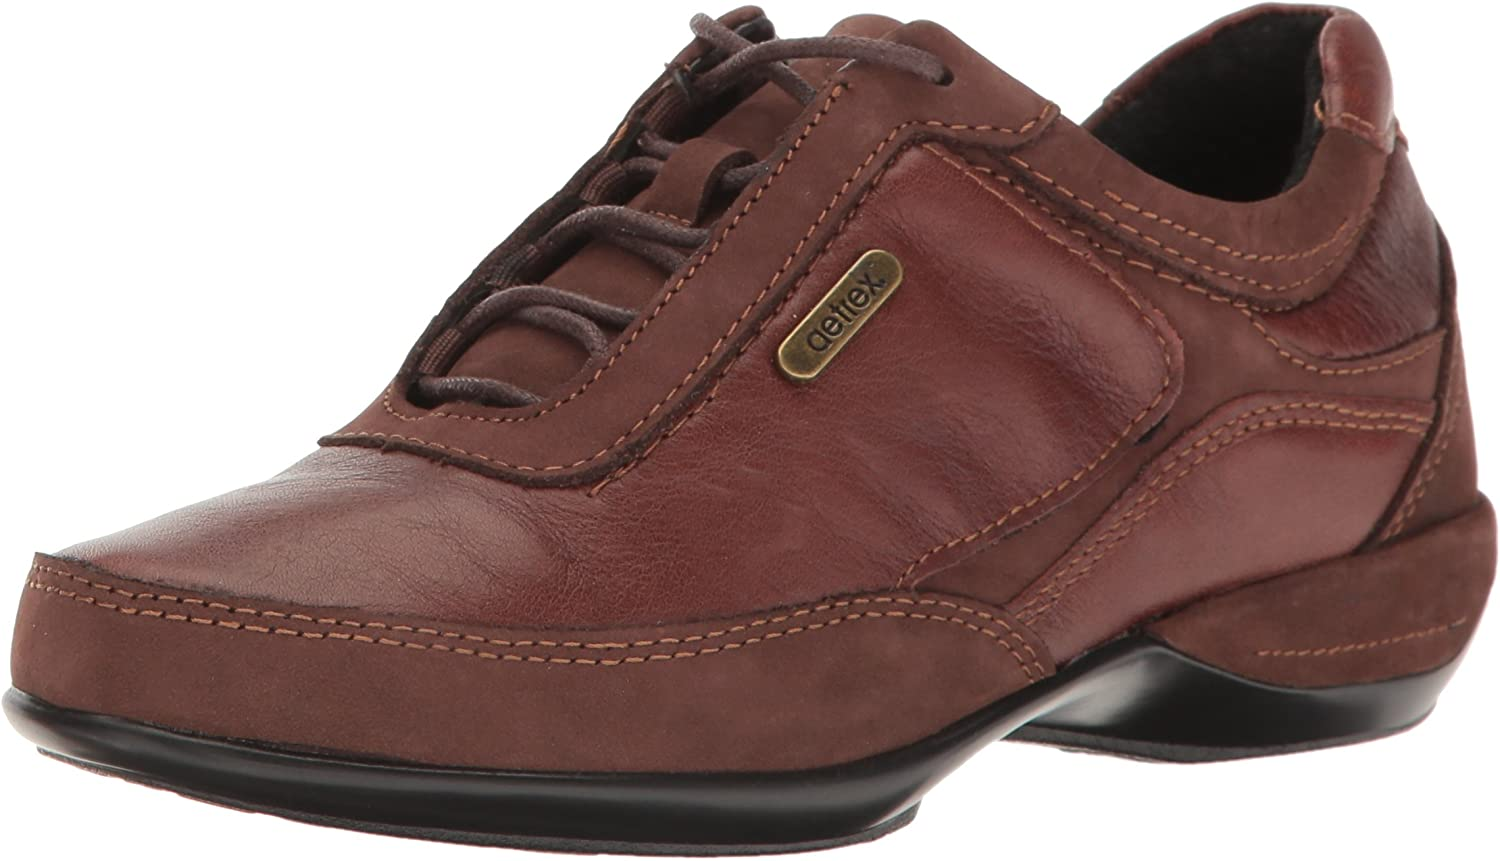 Aetrex Women's Holly Lace-up Oxford